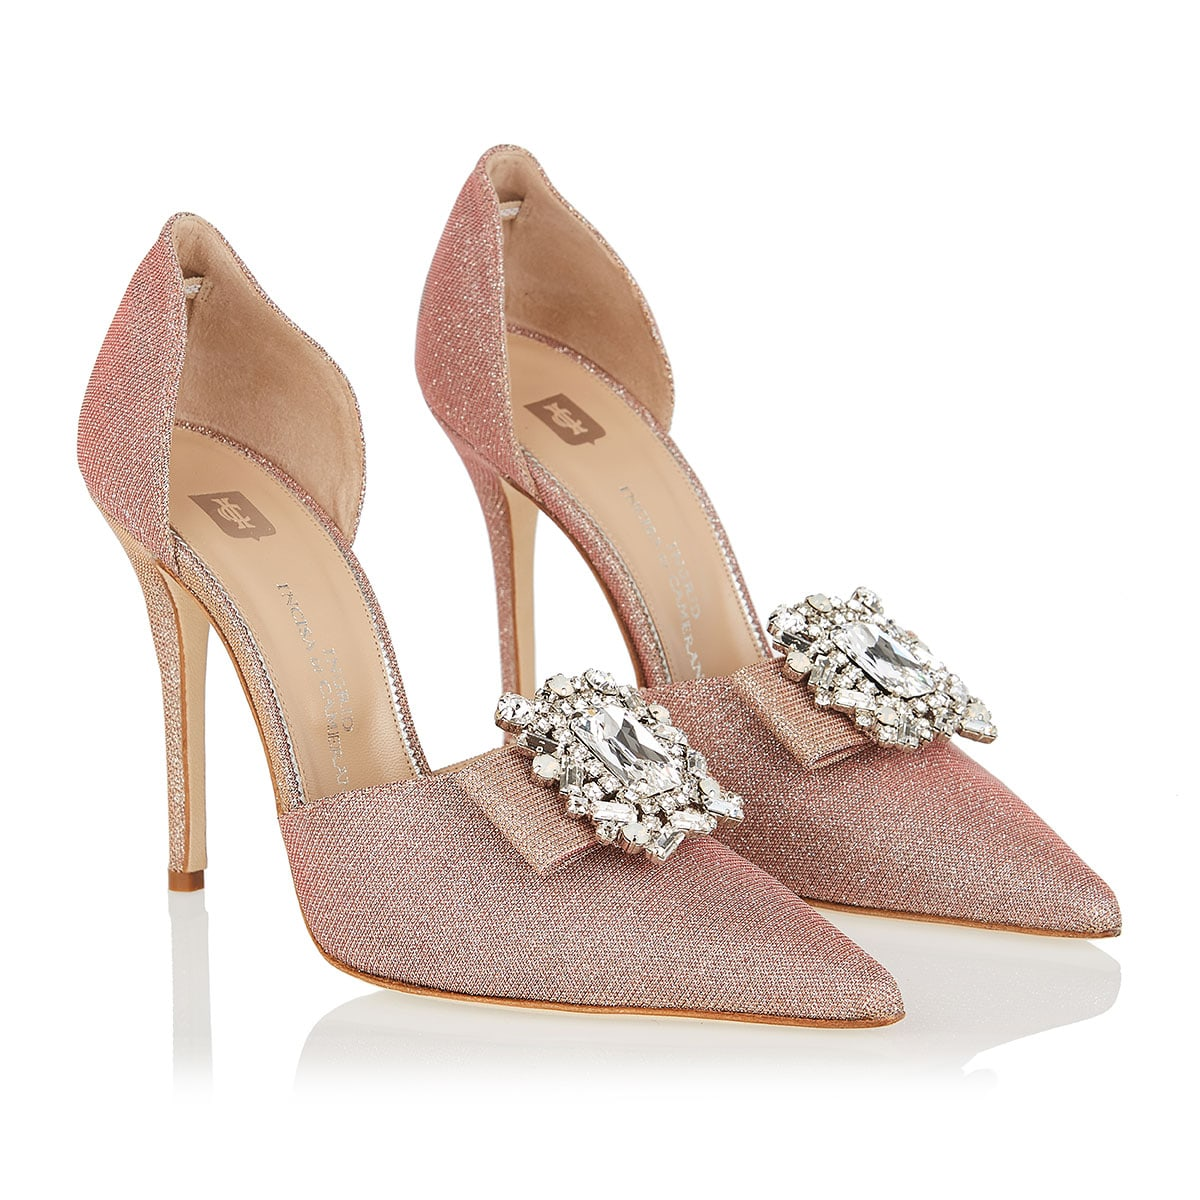 Ursula jeweled-buckle glitter pumps